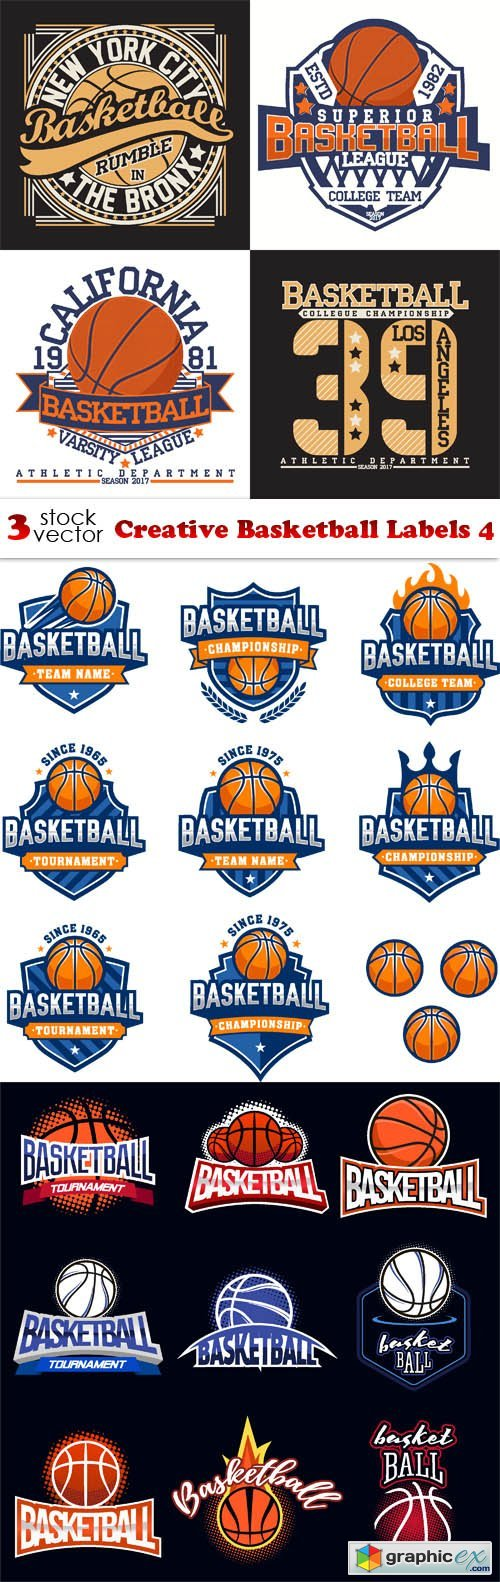 Creative Basketball Labels 4